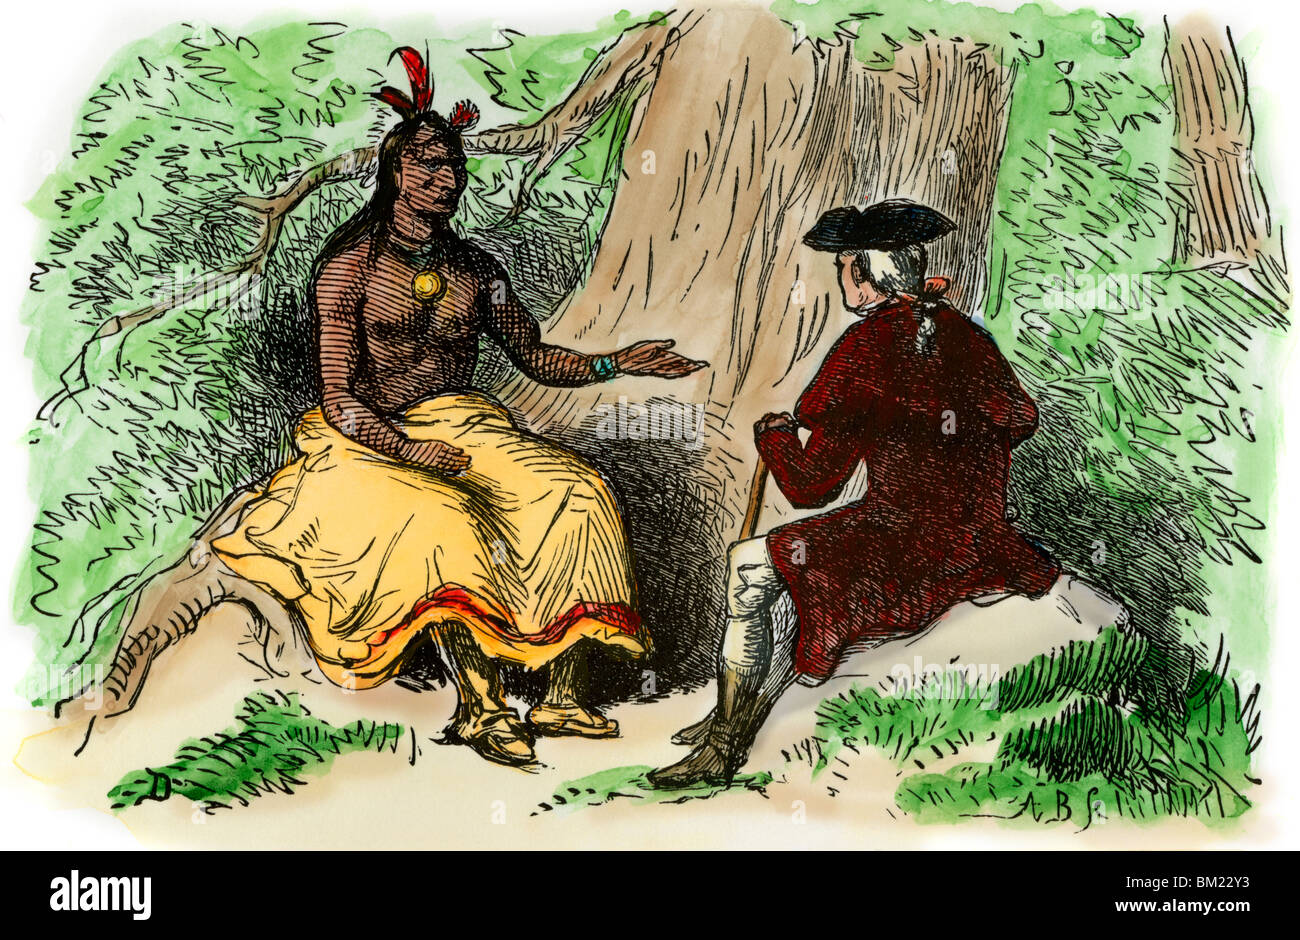 Mingo leader James Logan negotiating alliance with British officer, 1770s. Hand-colored woodcut - Stock Image